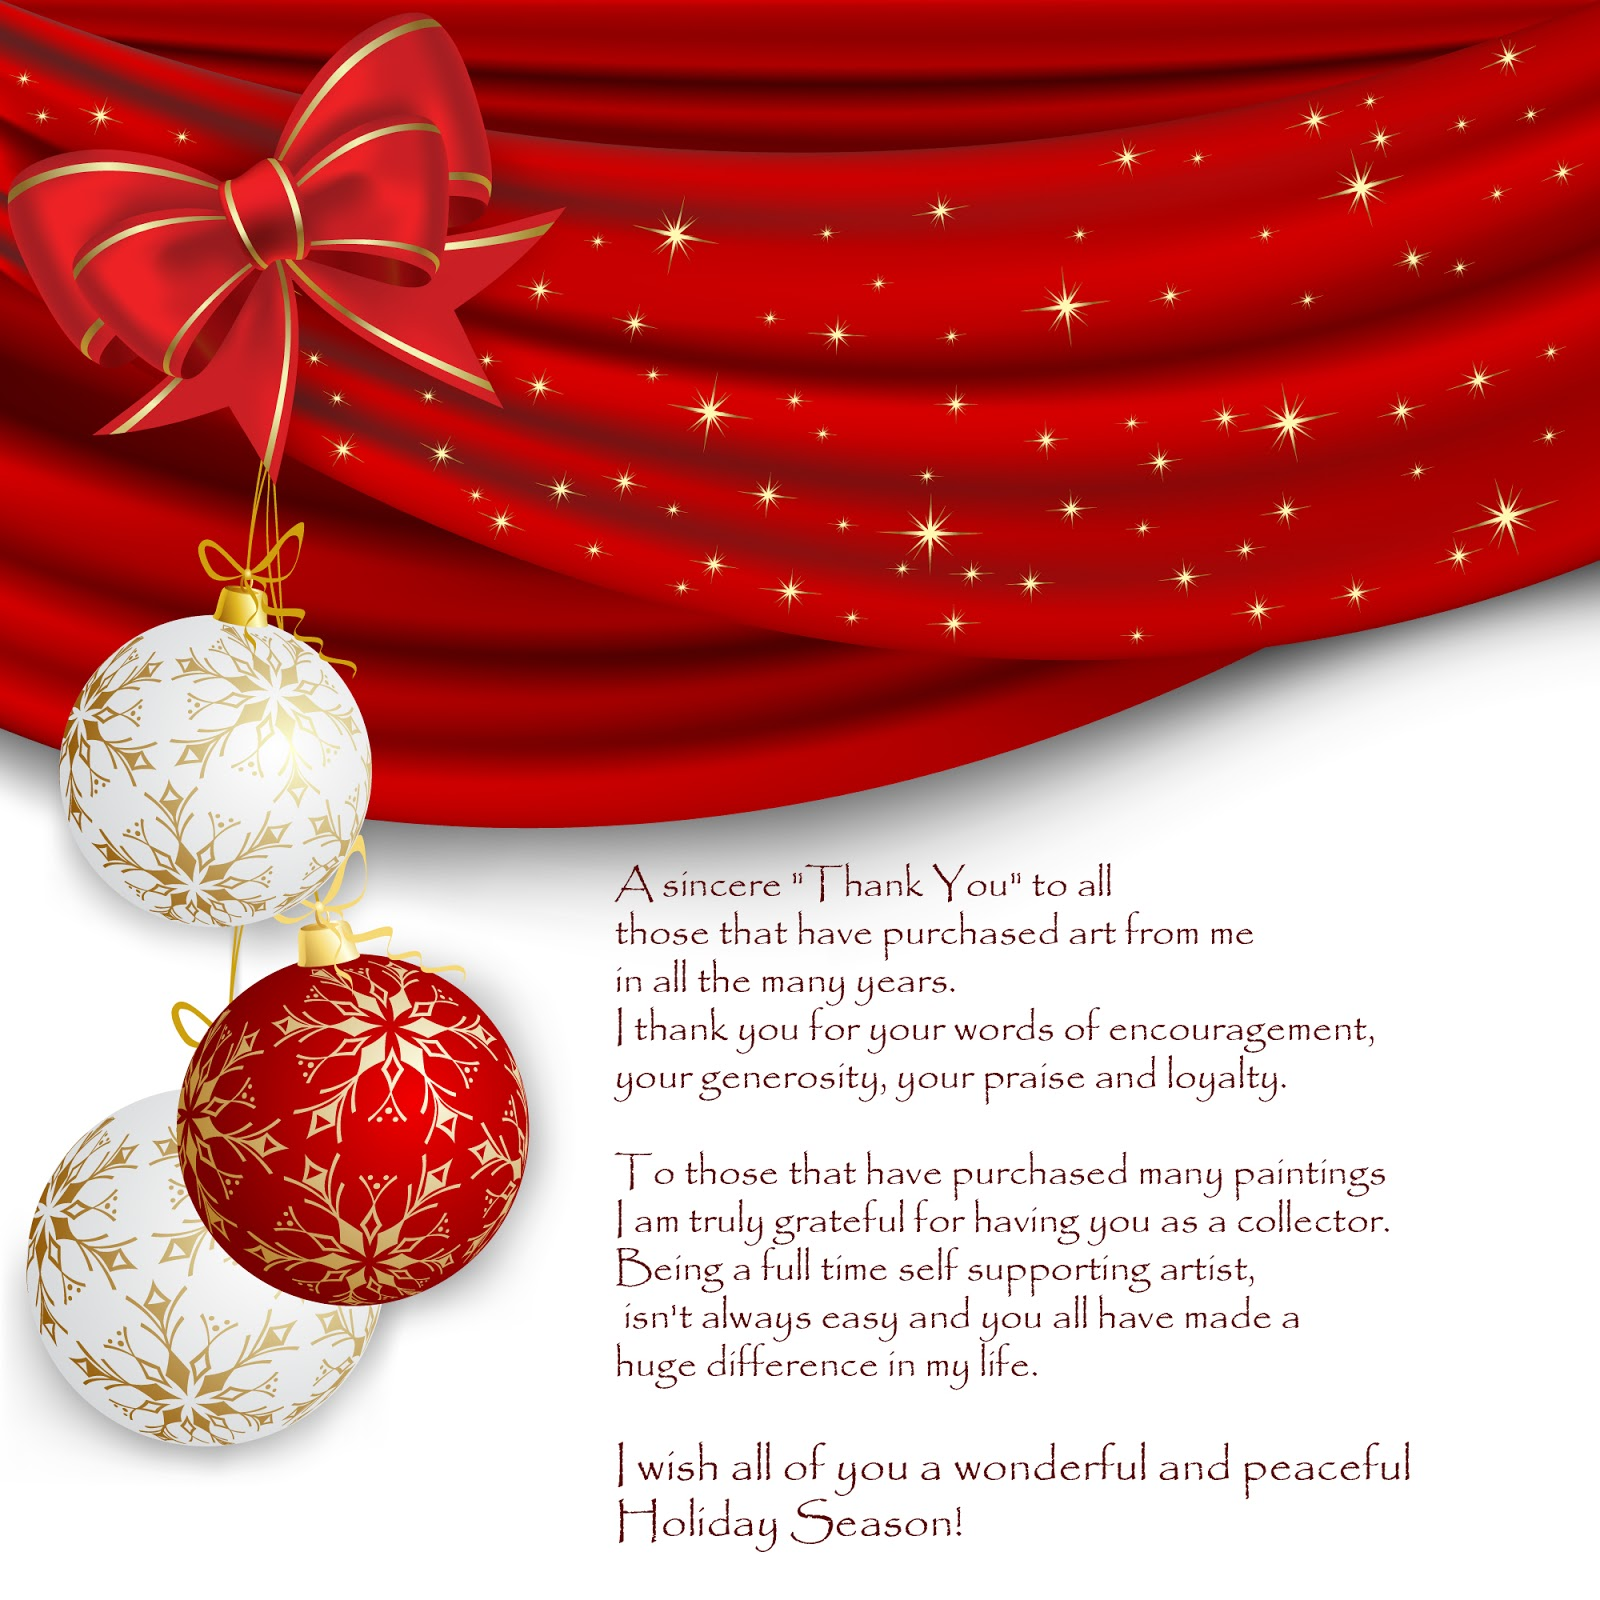 Ginette Callaway Holidays Wishes 2014